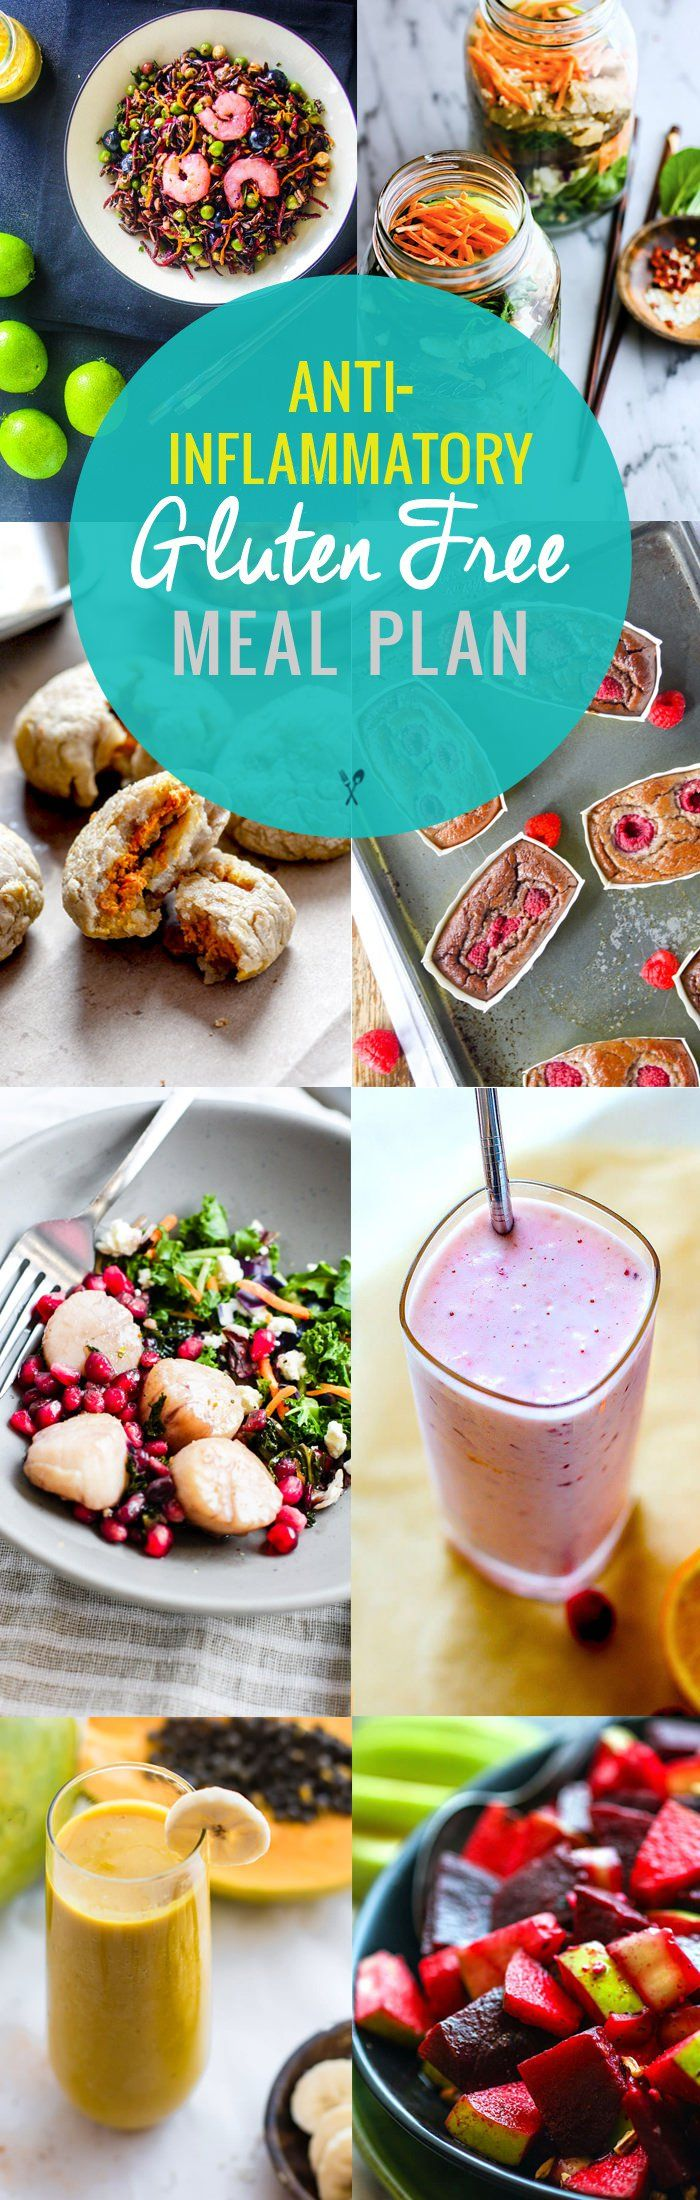 Anti-Inflammatory Gluten free meal plan recipes